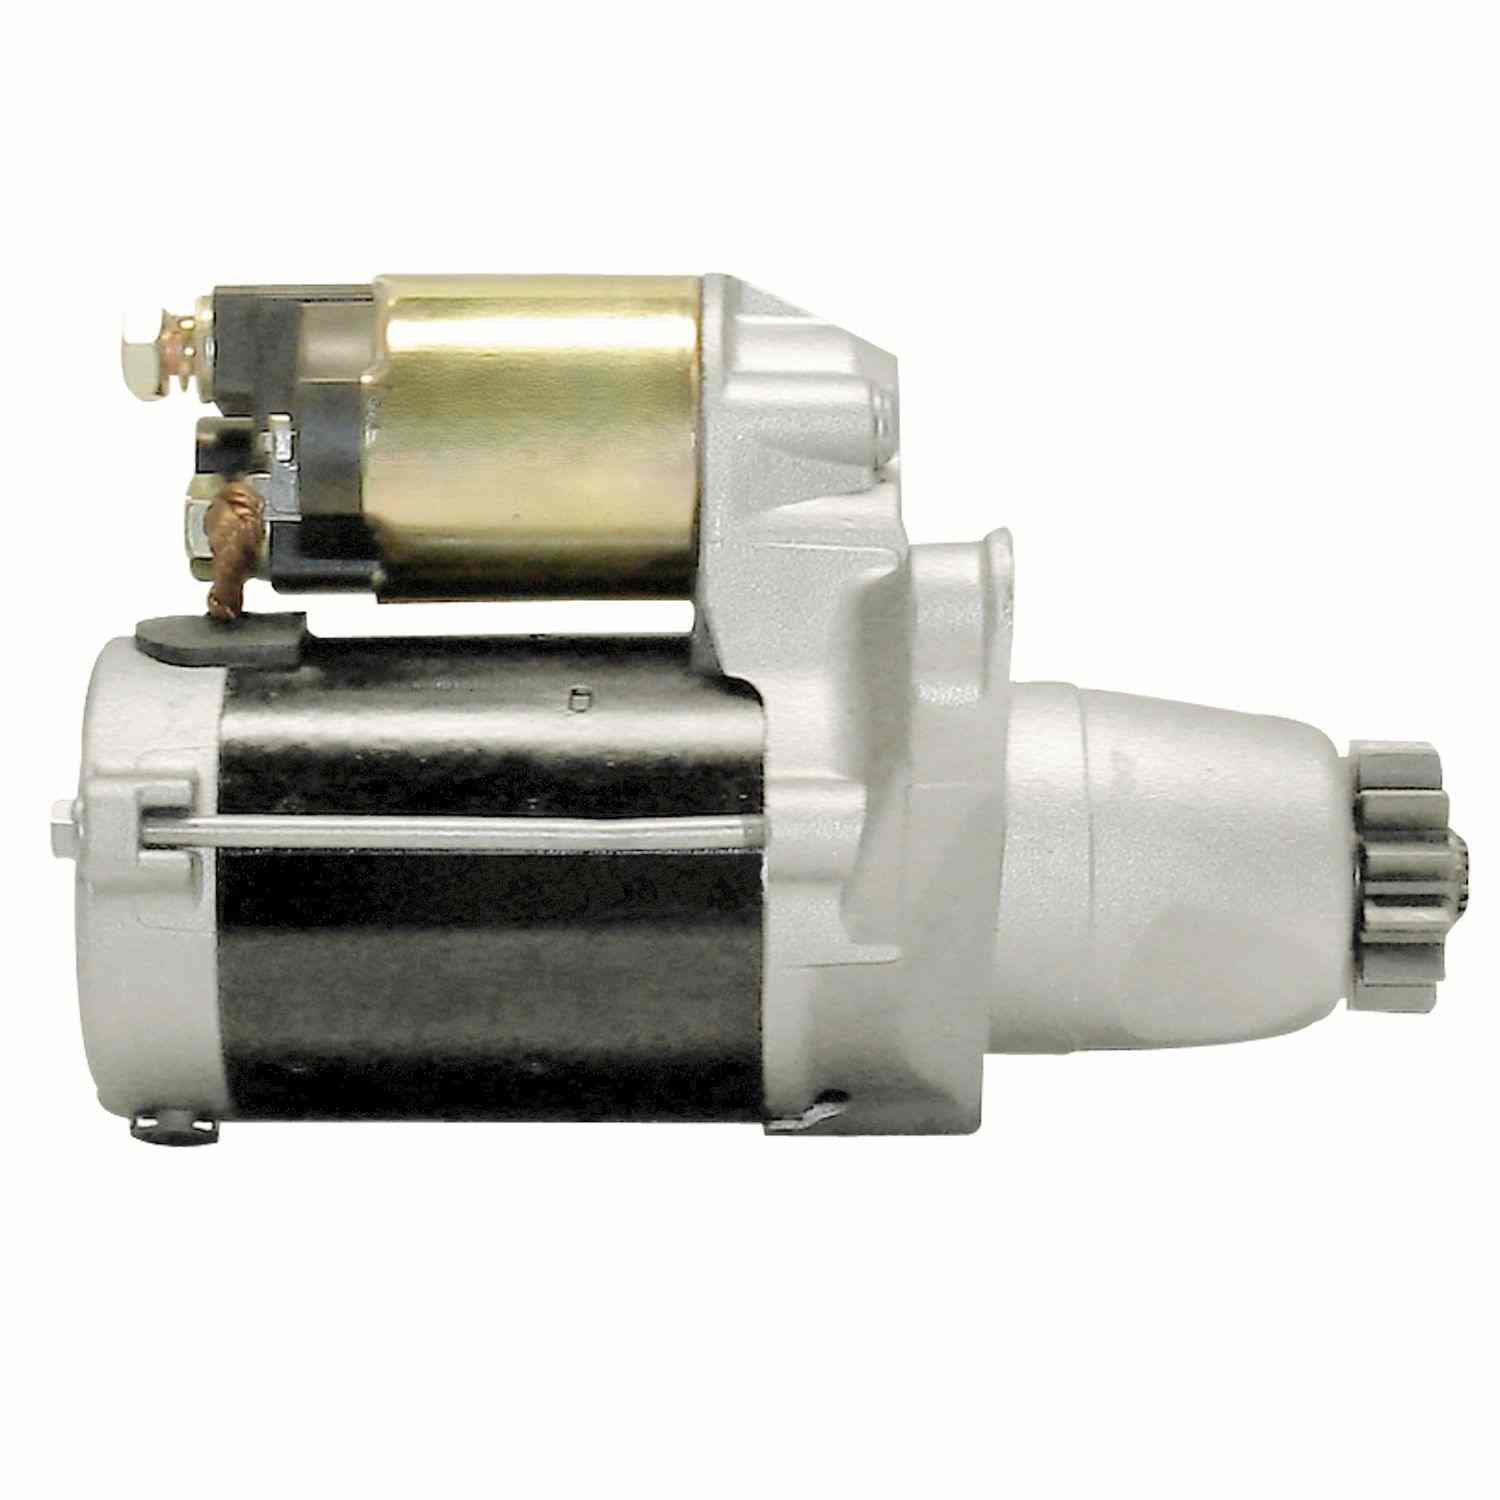 ACDELCO GOLD/PROFESSIONAL - Reman Starter Motor - DCC 336-1752A